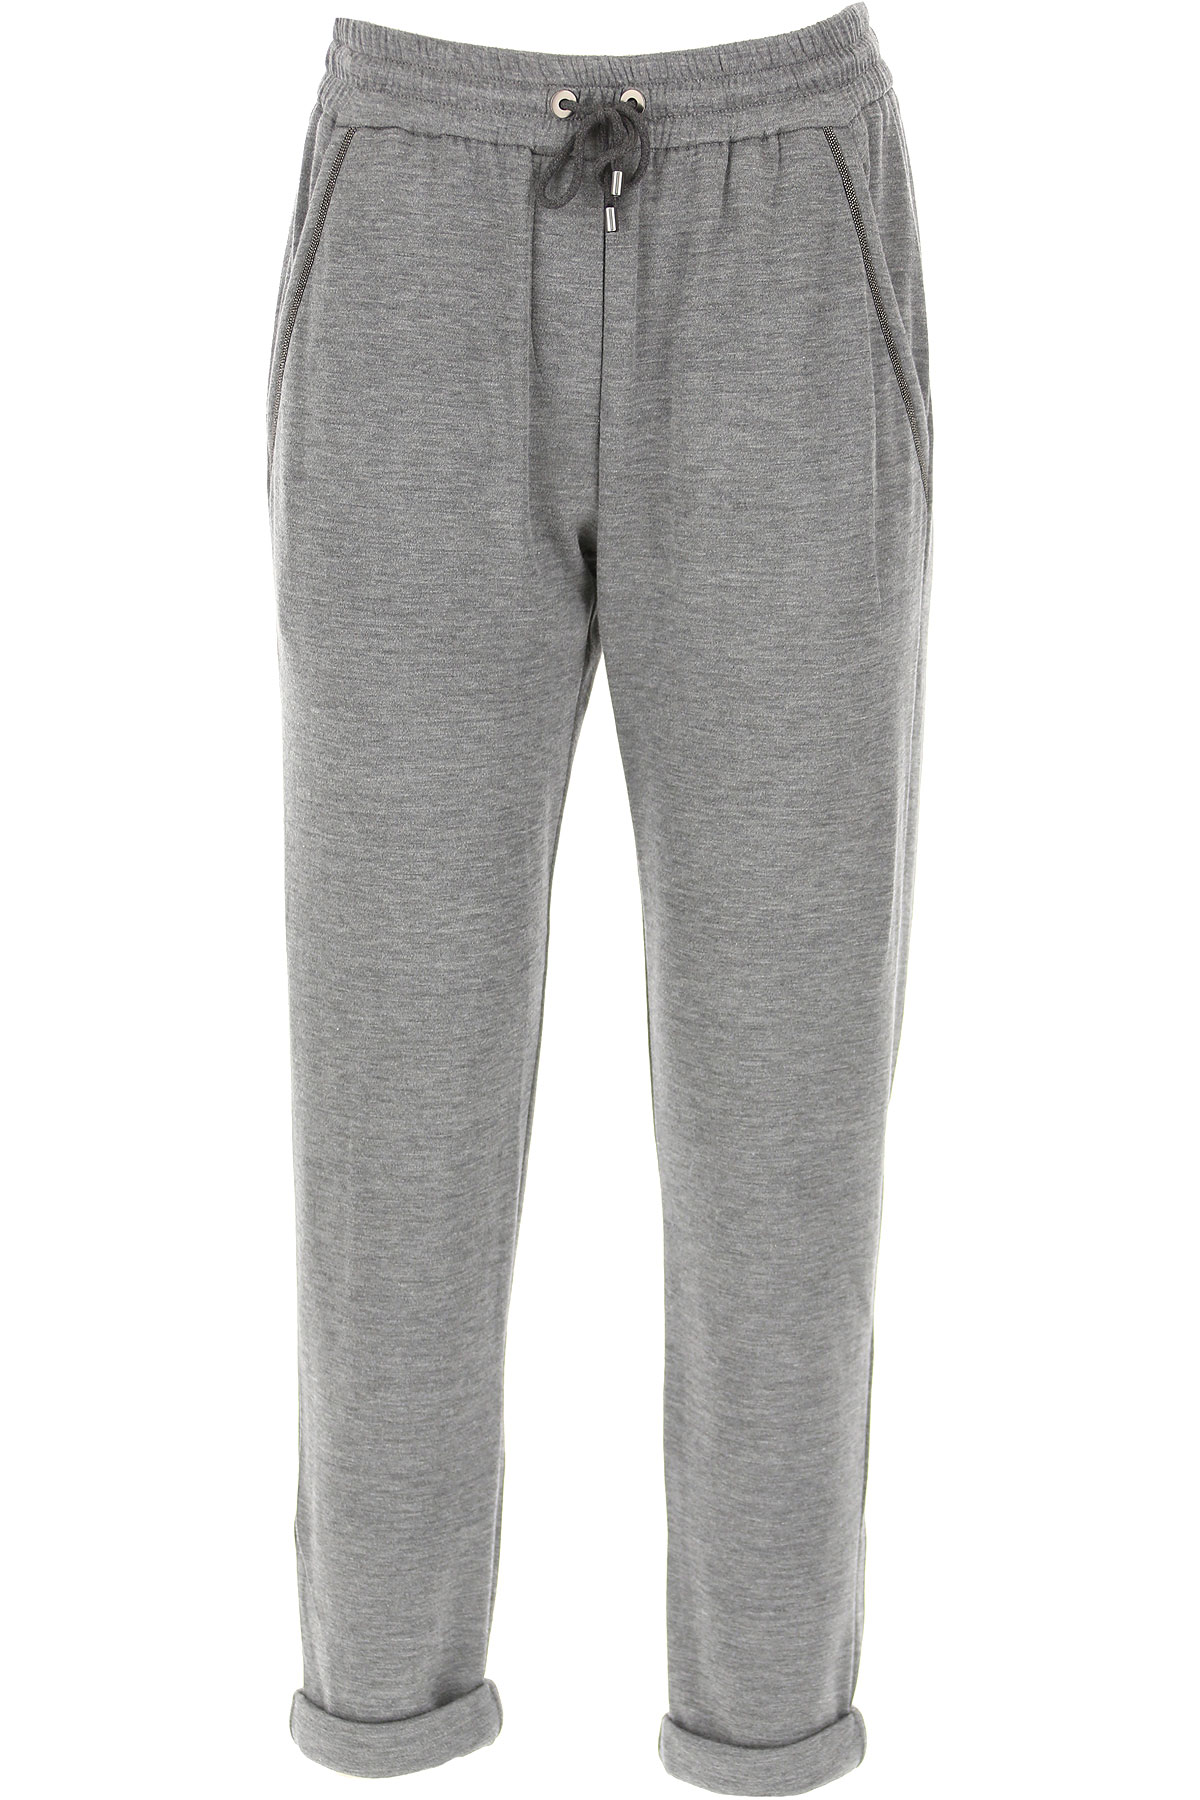 Brunello Cucinelli Pants for Women On Sale, Grey, Cotton, 2019, S (IT 40) L (IT 44 )